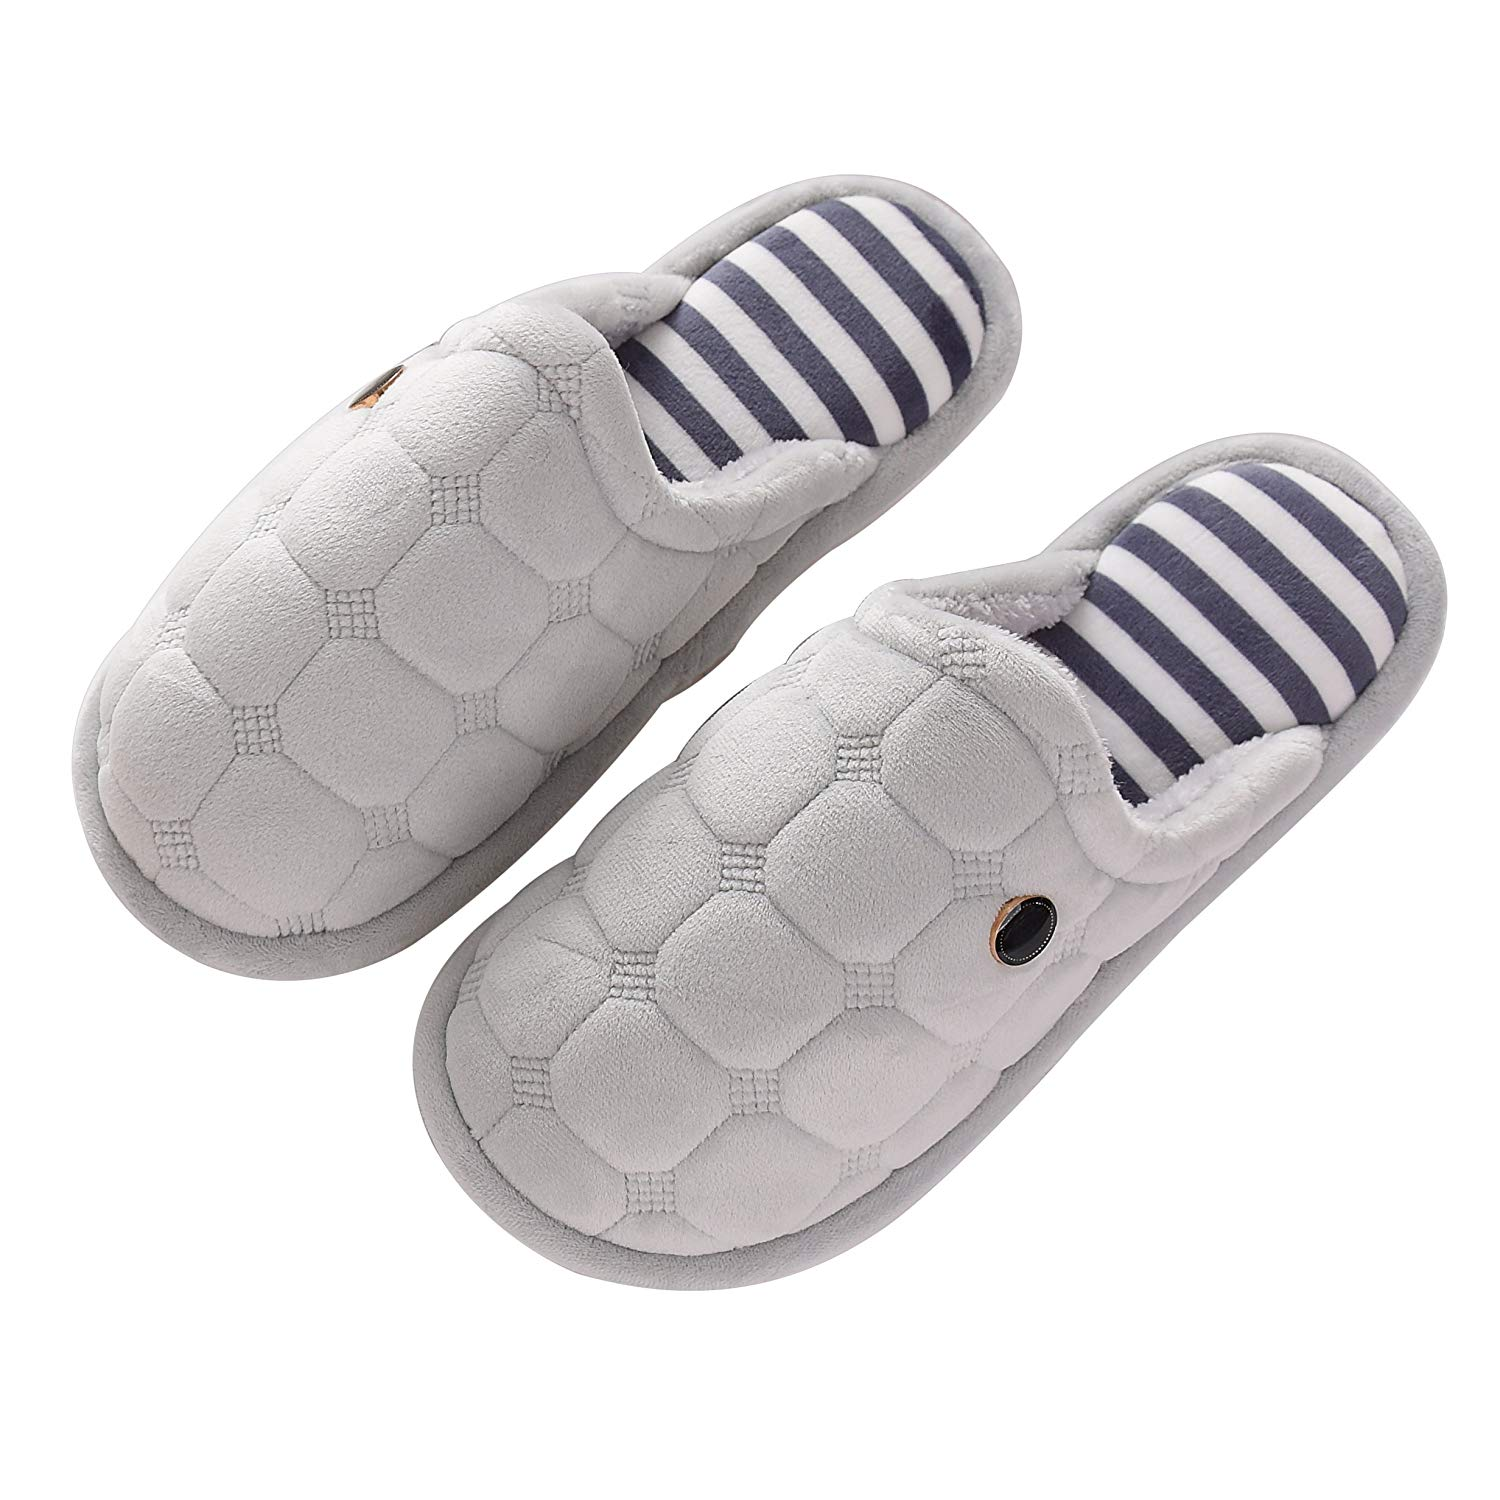 df523faa2 Get Quotations · OxygenBeauty Indoor Slippers, Cotton Slippers, Winter Warm  Slipper, House Slippers, Comfortable Anti